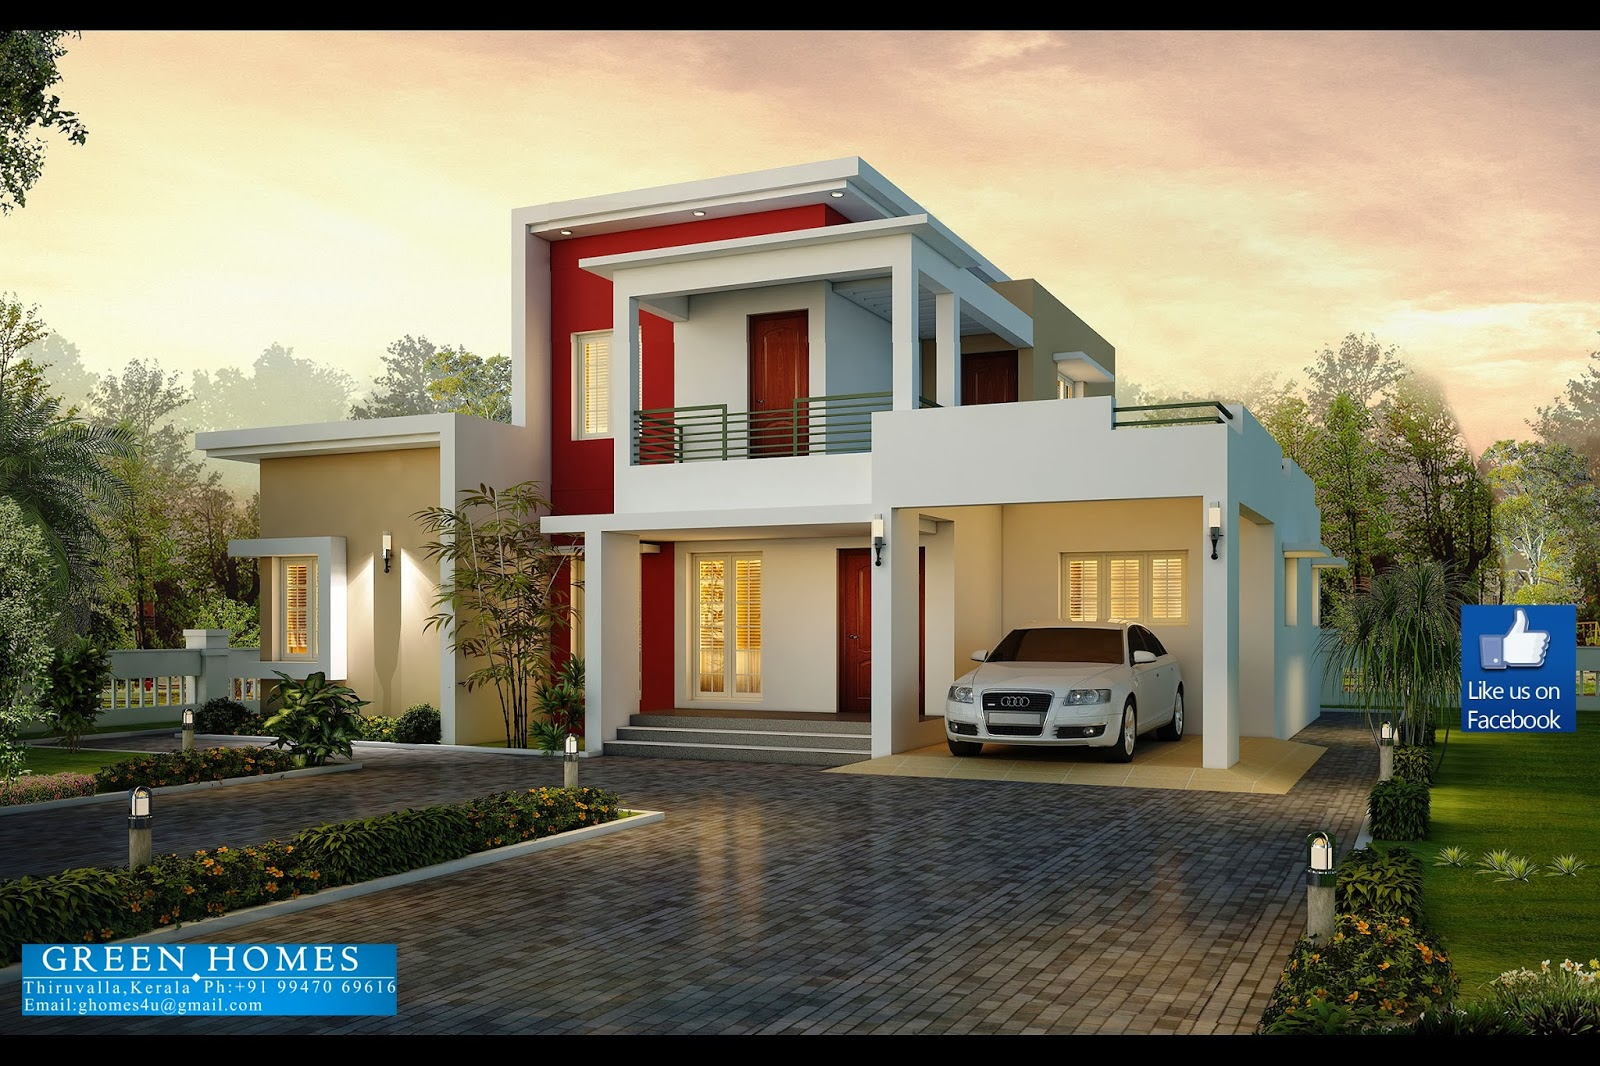 Green homes awesome 3 bedroom modern house design for 3 bedroom contemporary house plans